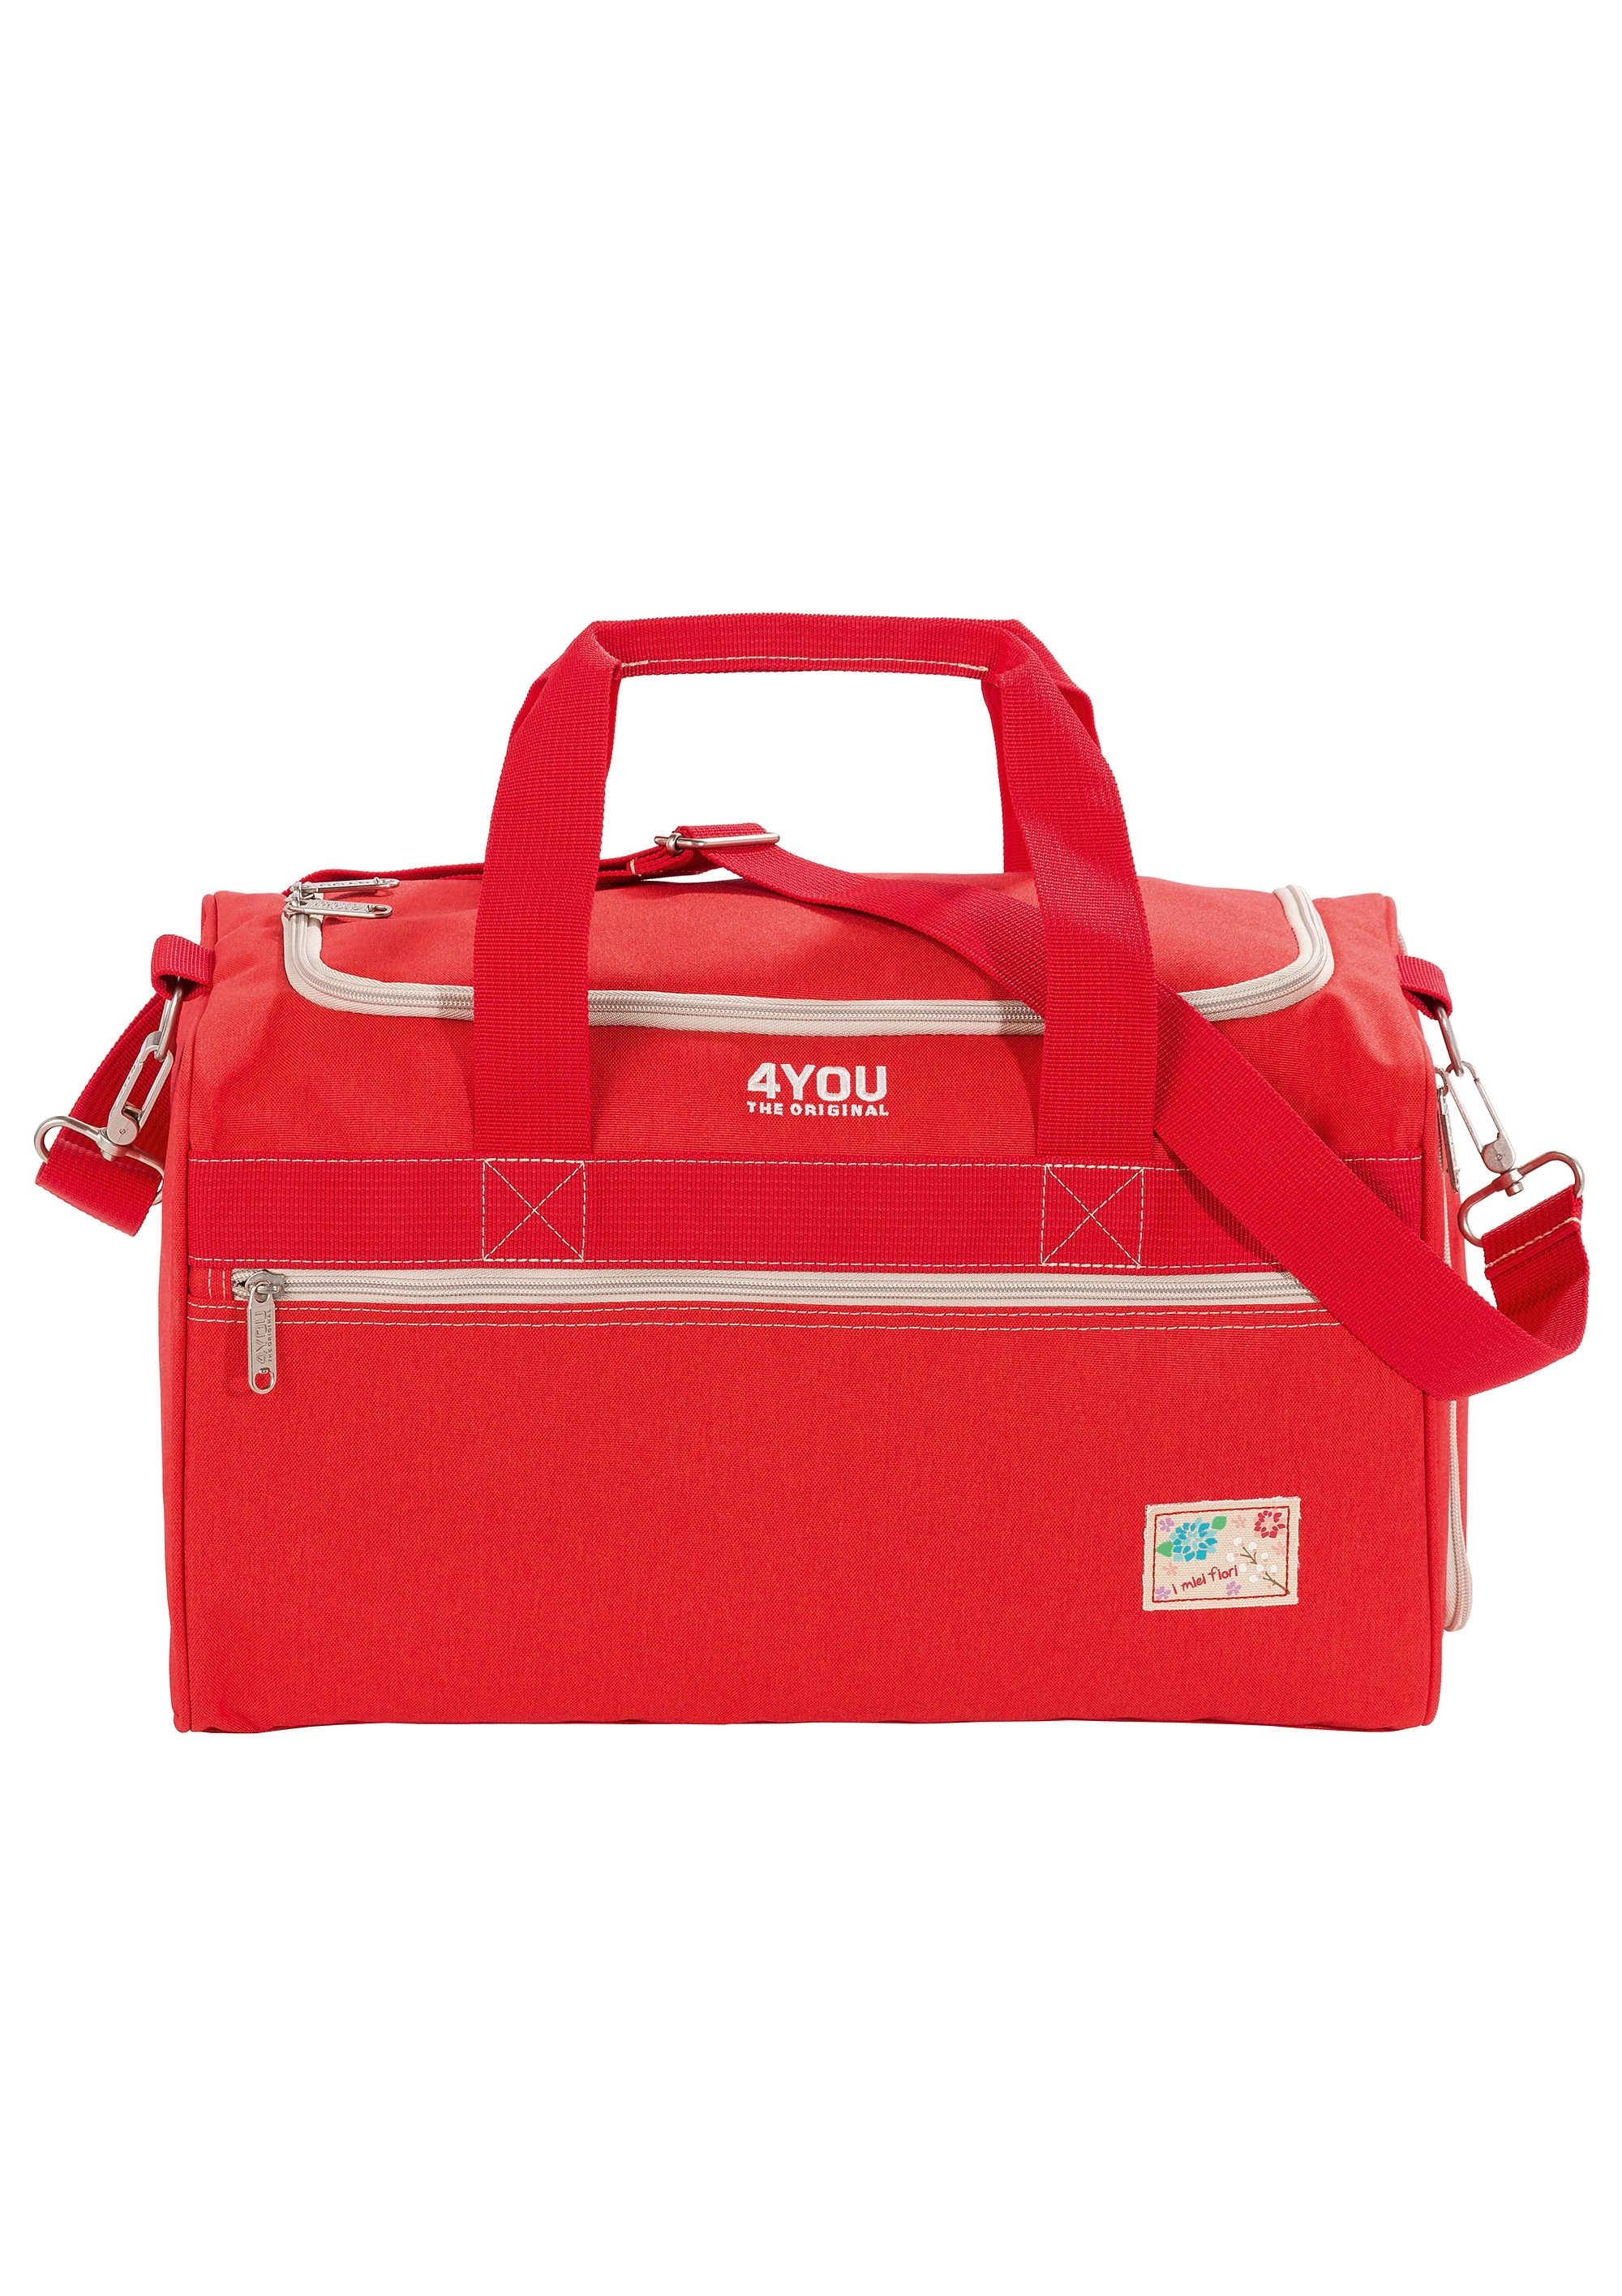 4YOU Sporttasche Just Red, »Sportbag M«